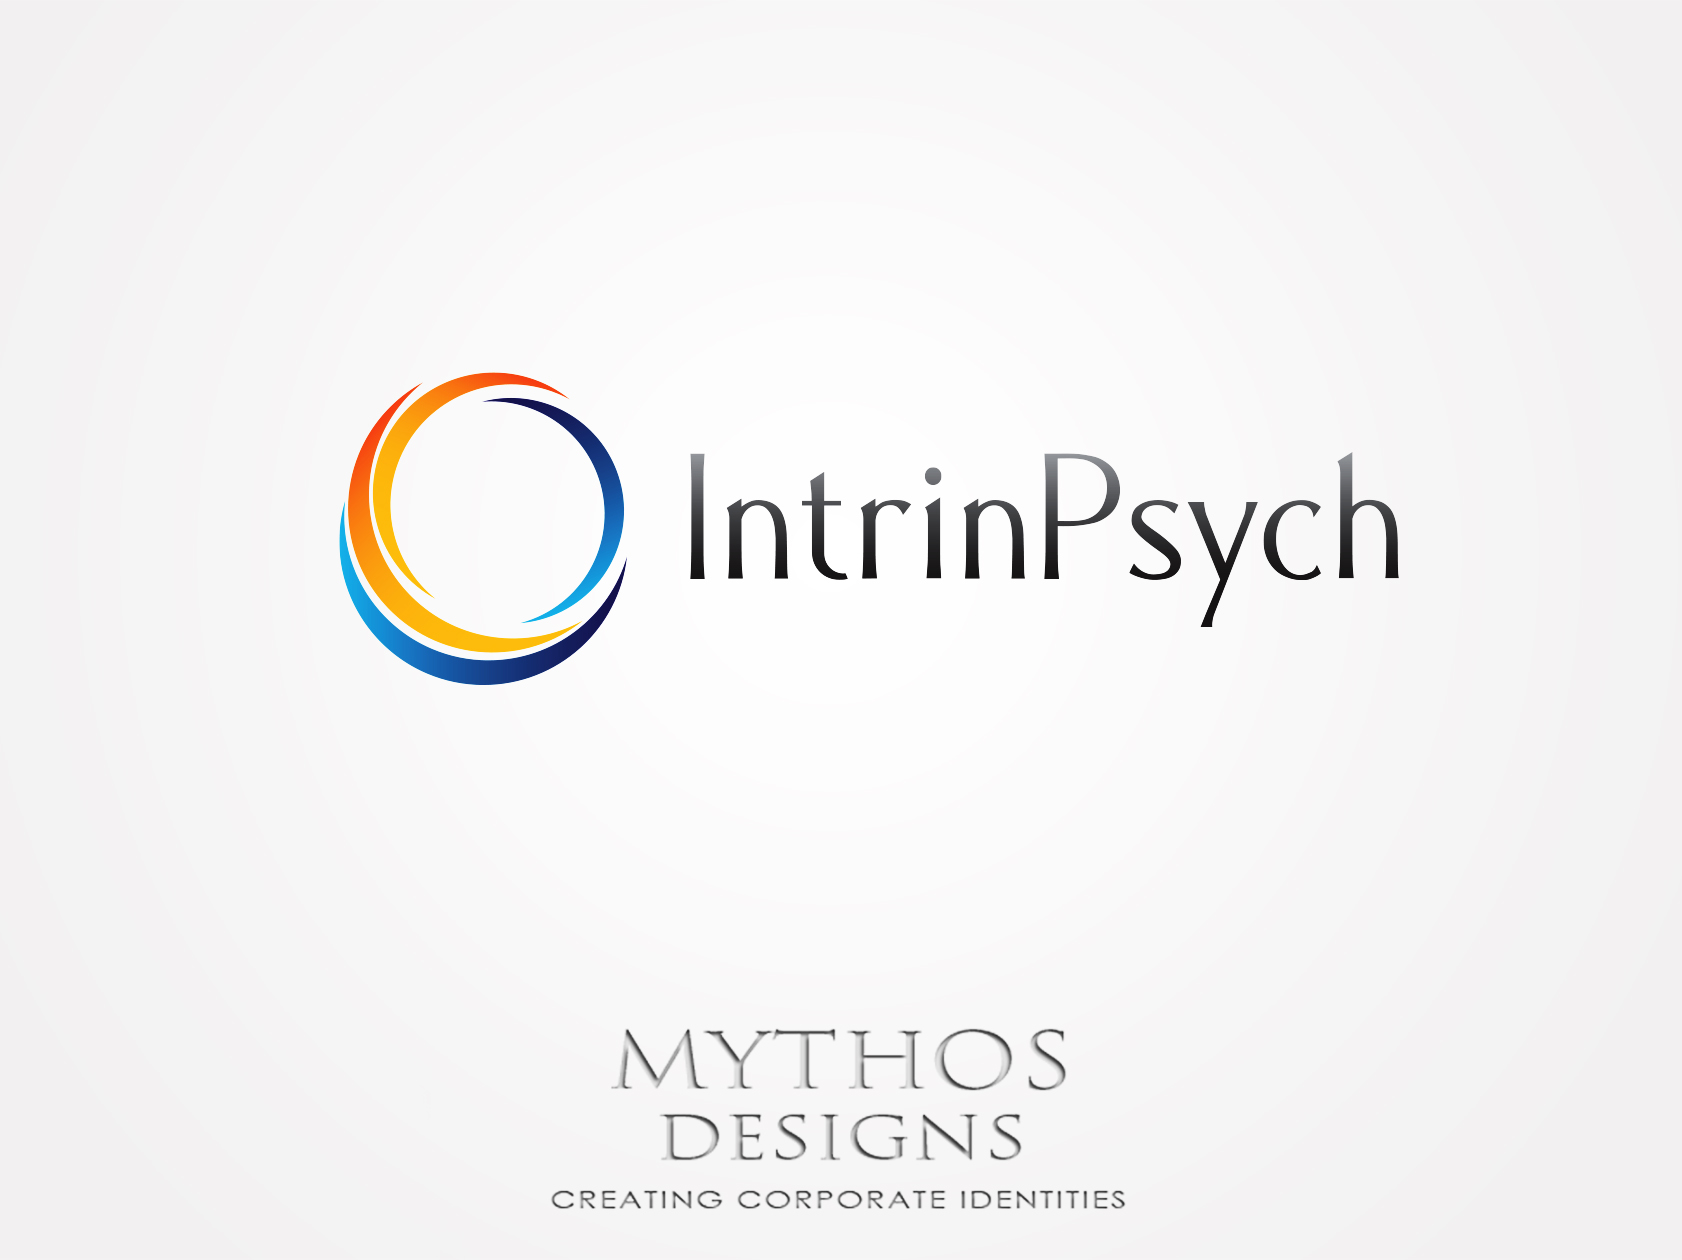 Logo Design by Mythos Designs - Entry No. 42 in the Logo Design Contest New Logo Design for IntrinPsych.